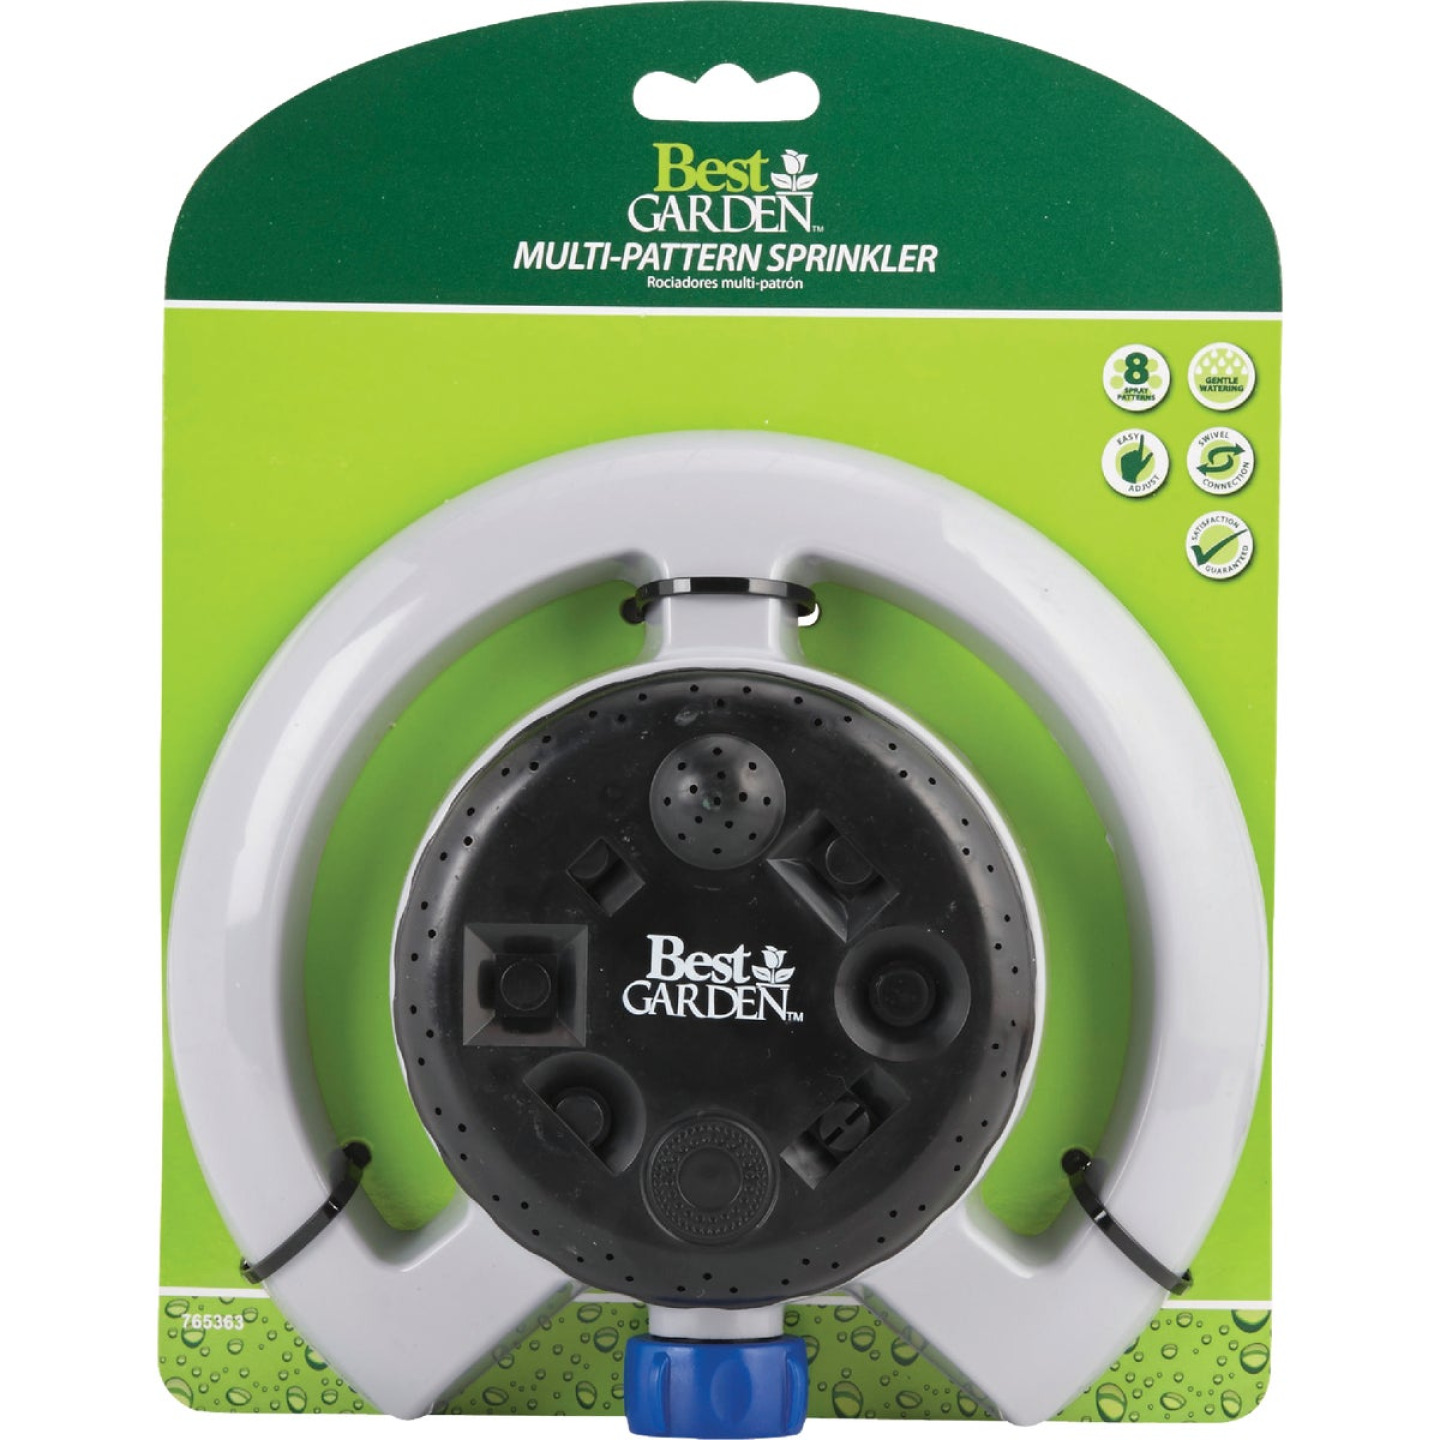 Best Garden Poly Varied Coverage Stationary Turret Sprinkler, Blue & Gray Image 2